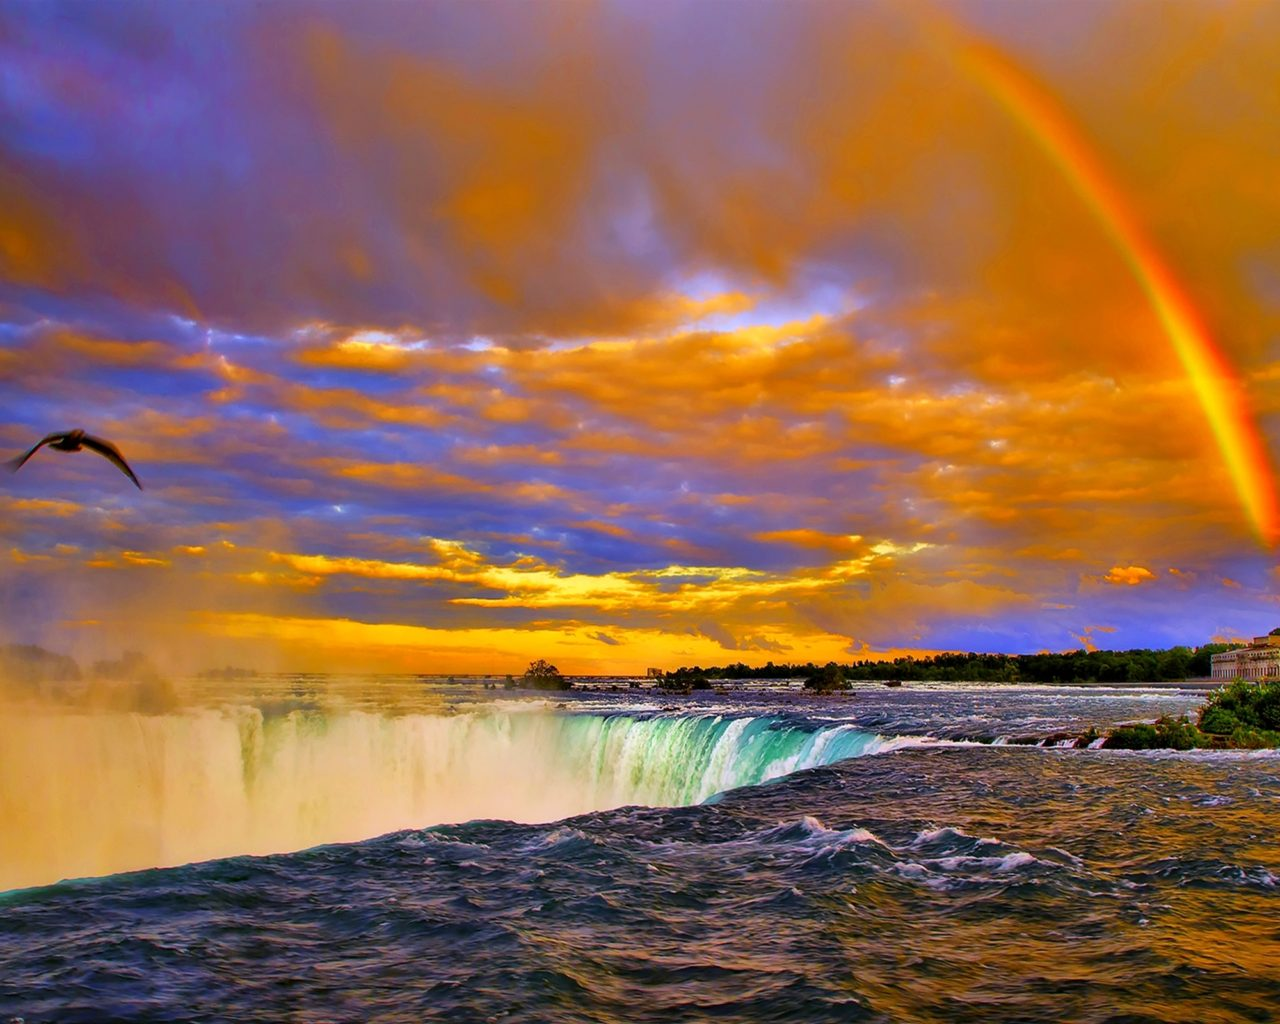 Niagara Falls Wallpaper Iphone Rainbow Sunset Over Niagara Falls Desktop Background